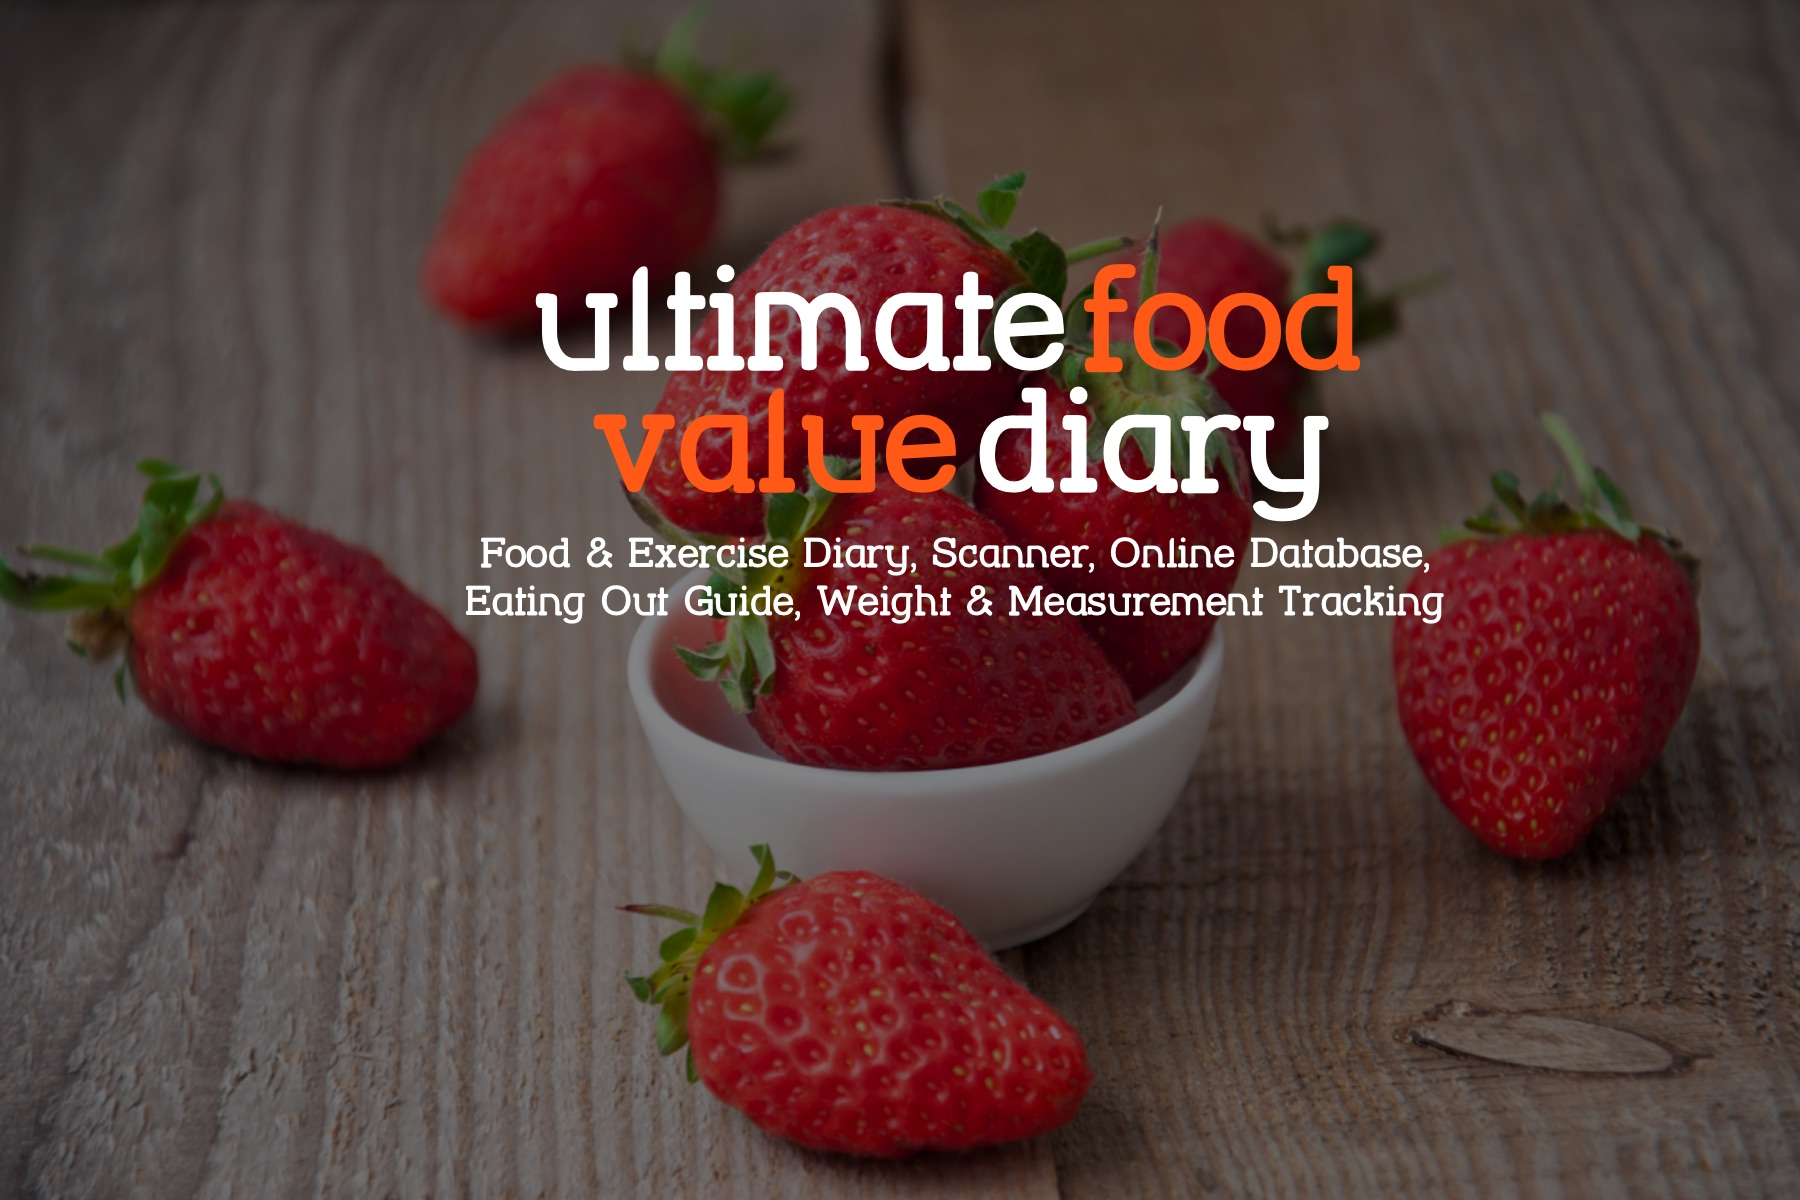 Ultimate Food Value Diary